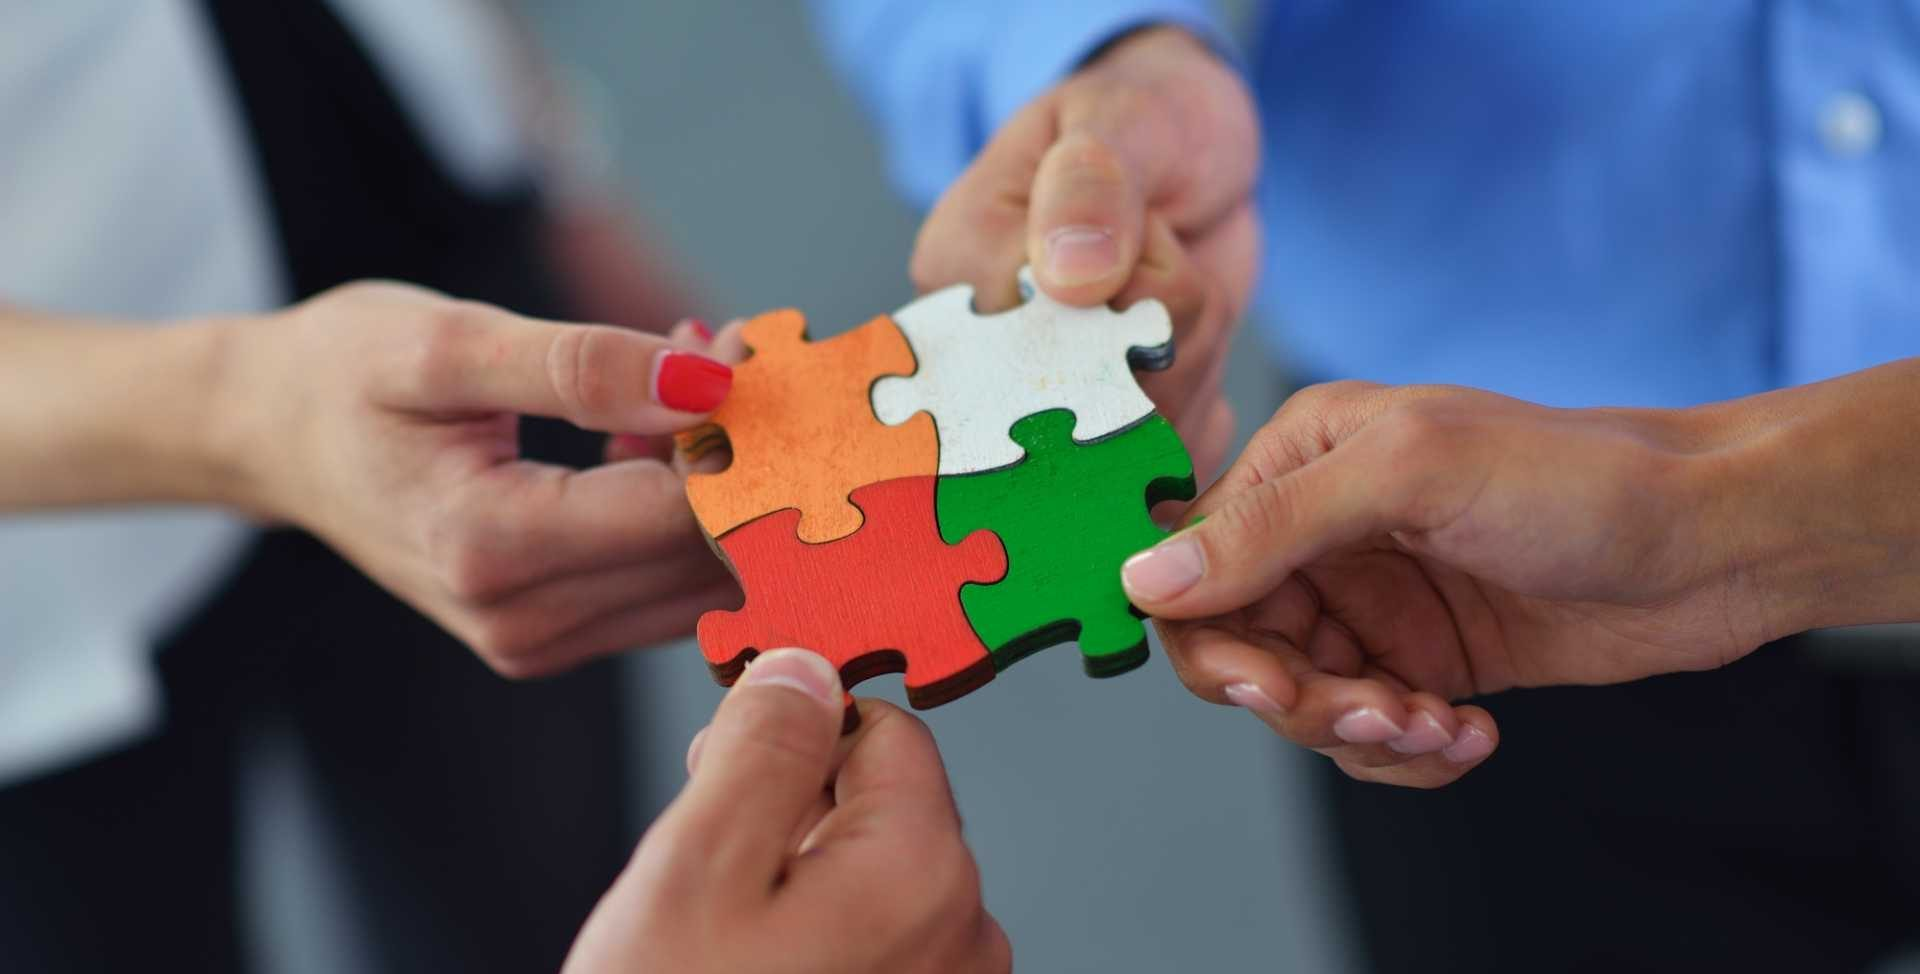 Group of business people assembling jigsaw puzzle - What support are UK manufacturers asking for - image courtesy of Depositphotos.